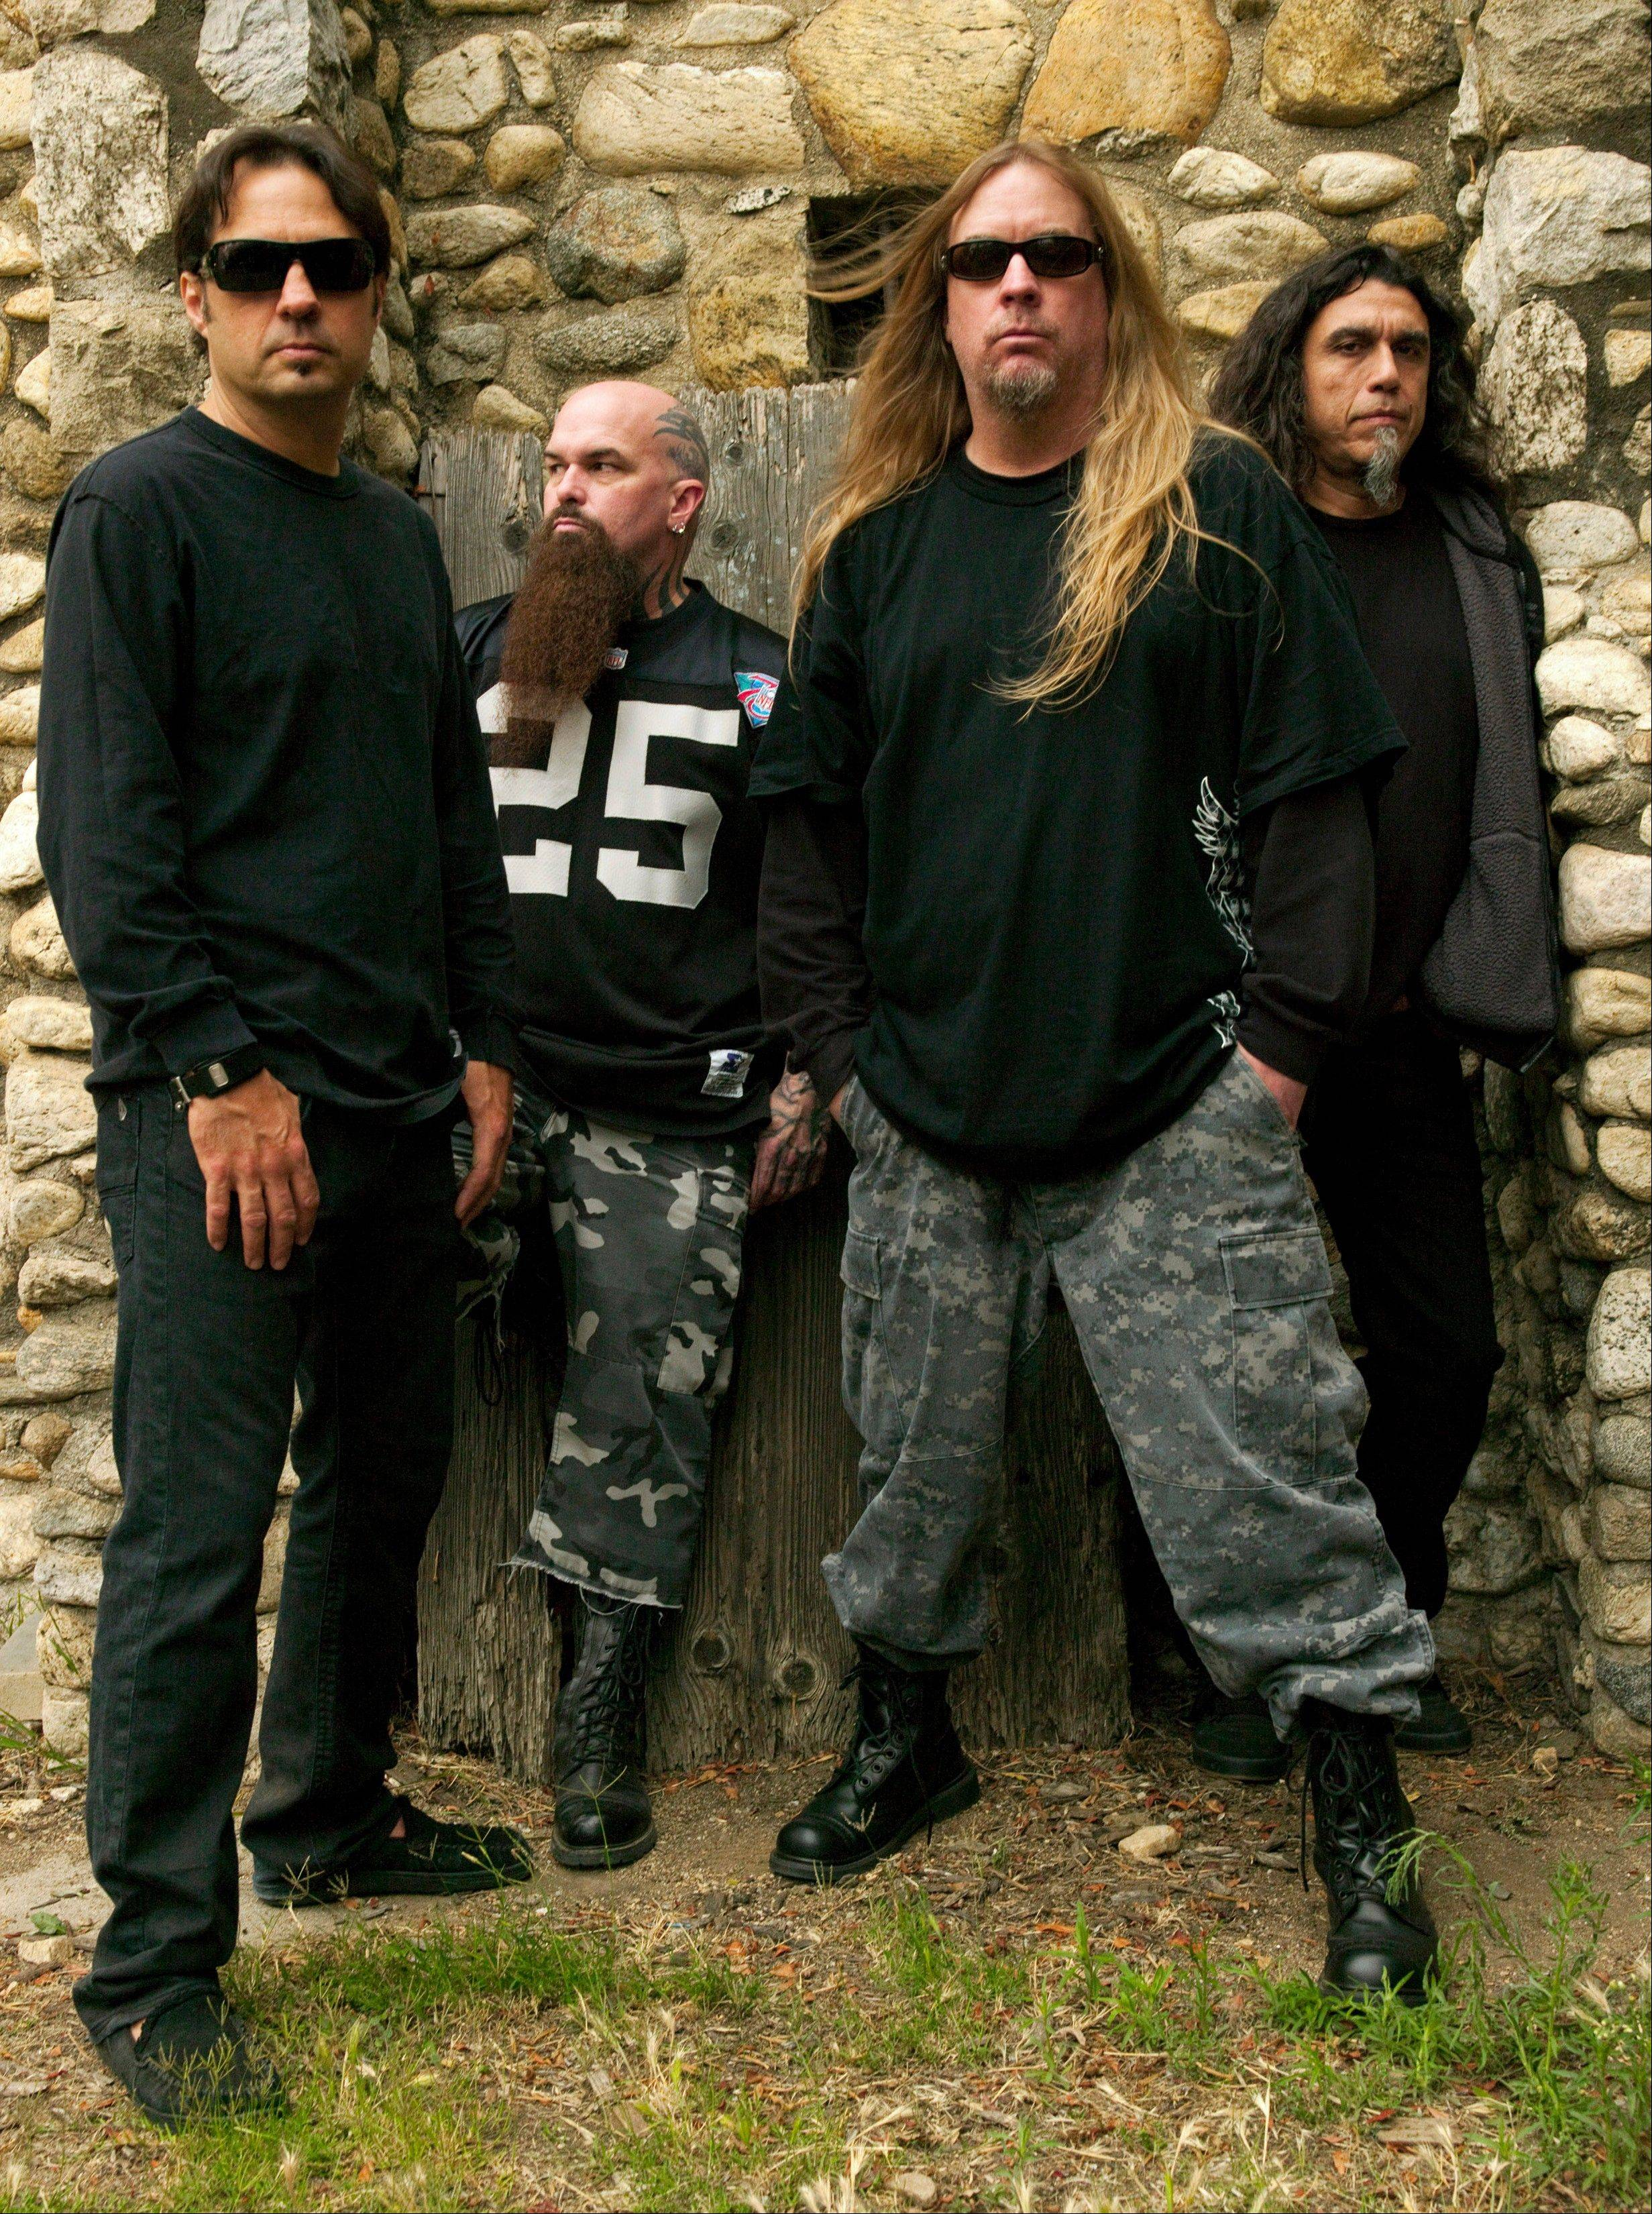 Dave Lombardo, left, Kerry King, Jeff Hanneman and Tom Araya comprised Slayer. Hanneman, 49, a founding member of the heavy metal band, has died of liver failure.